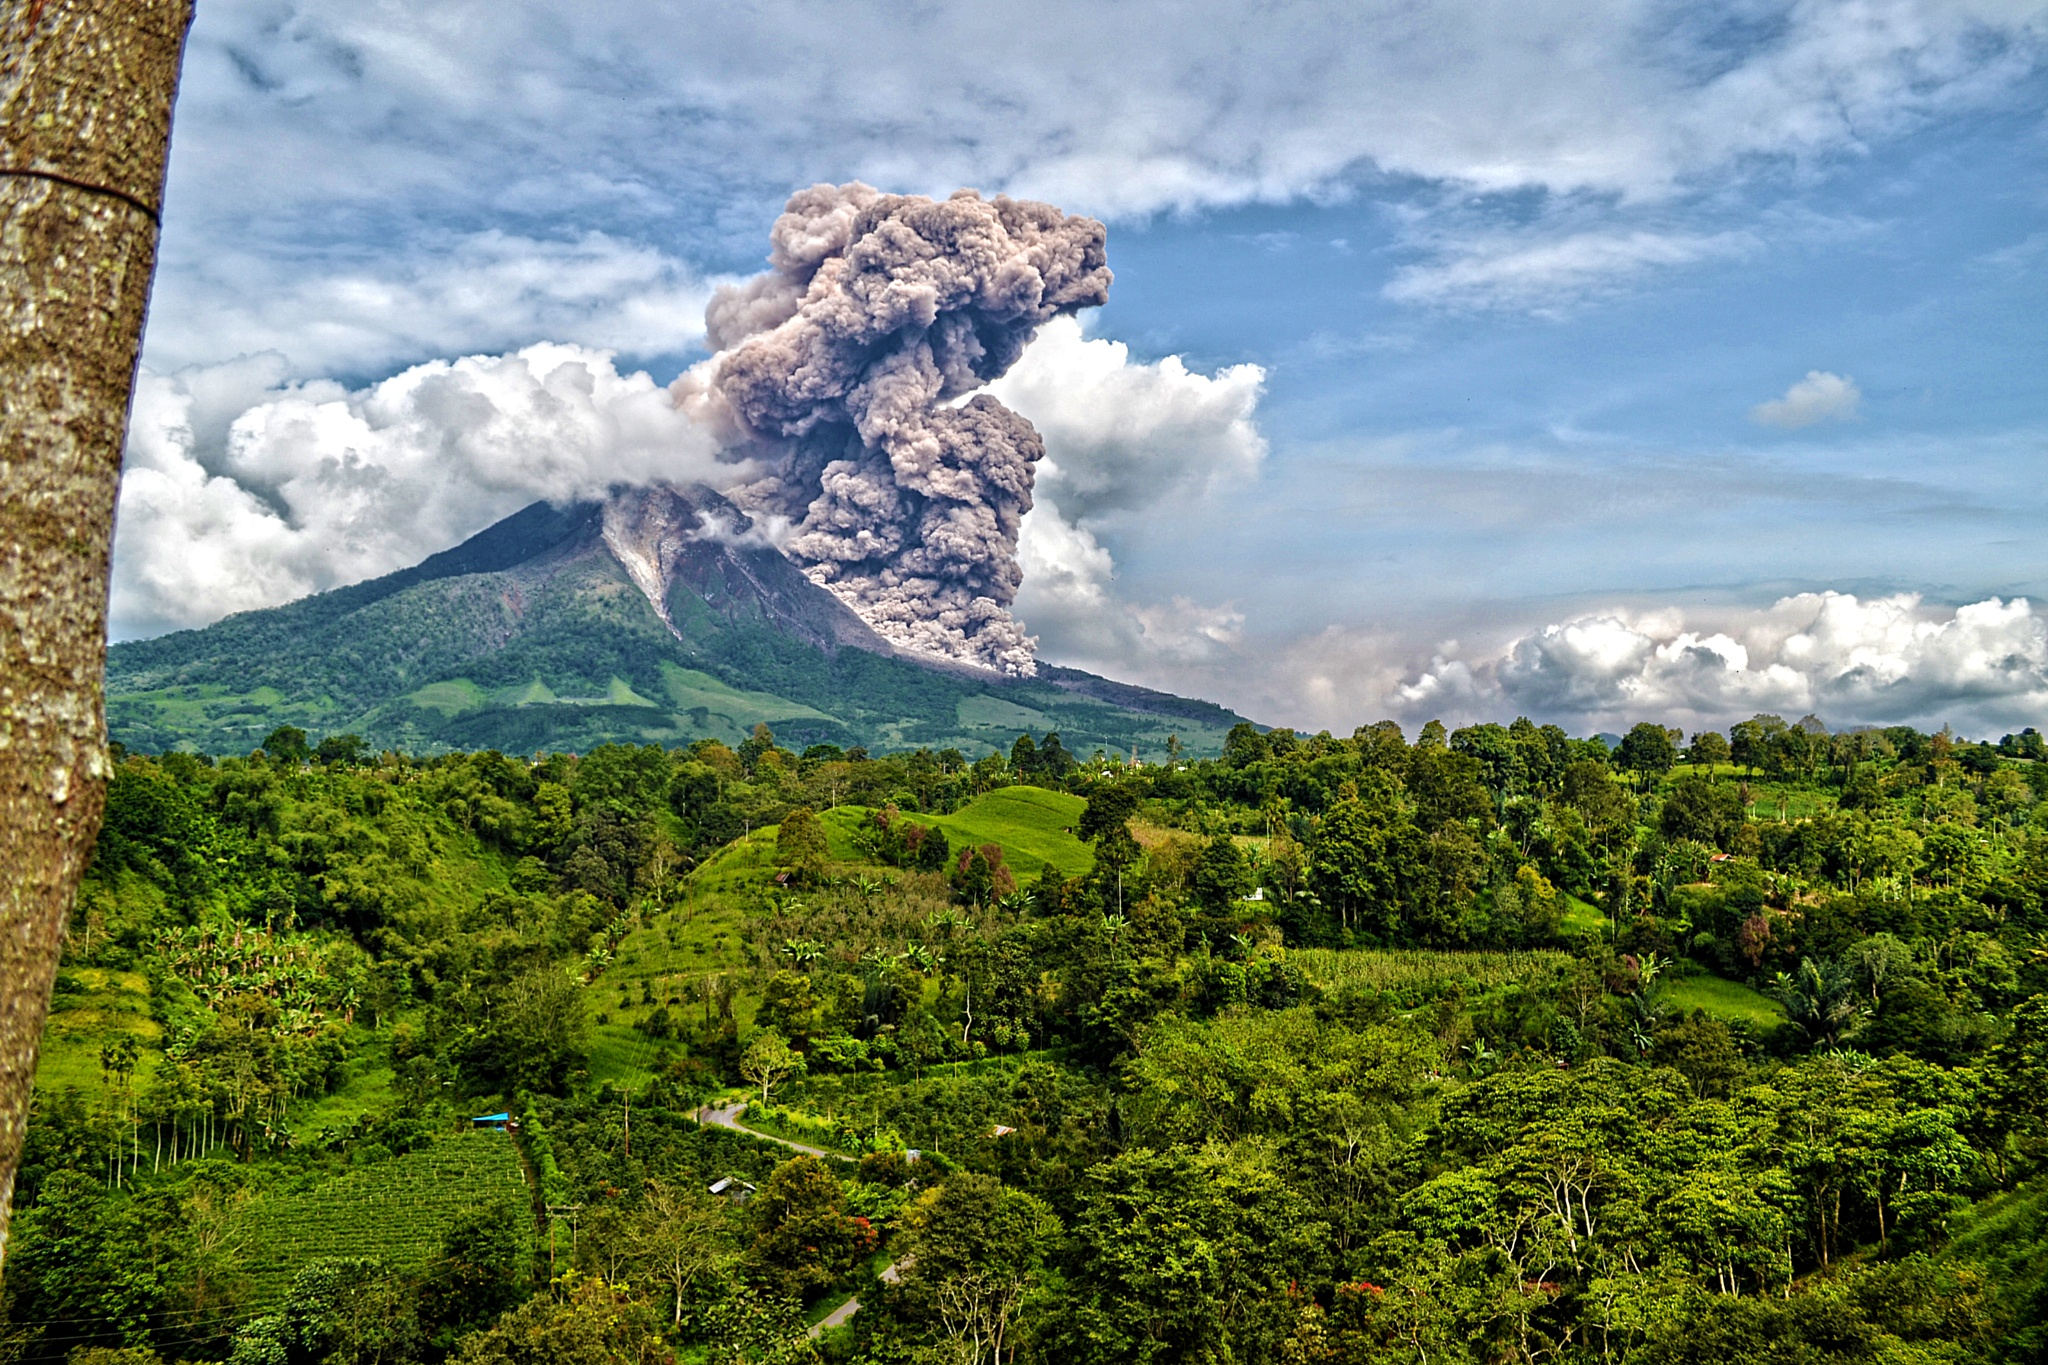 The Sinabung Volcano by Kriswanto Ginting's